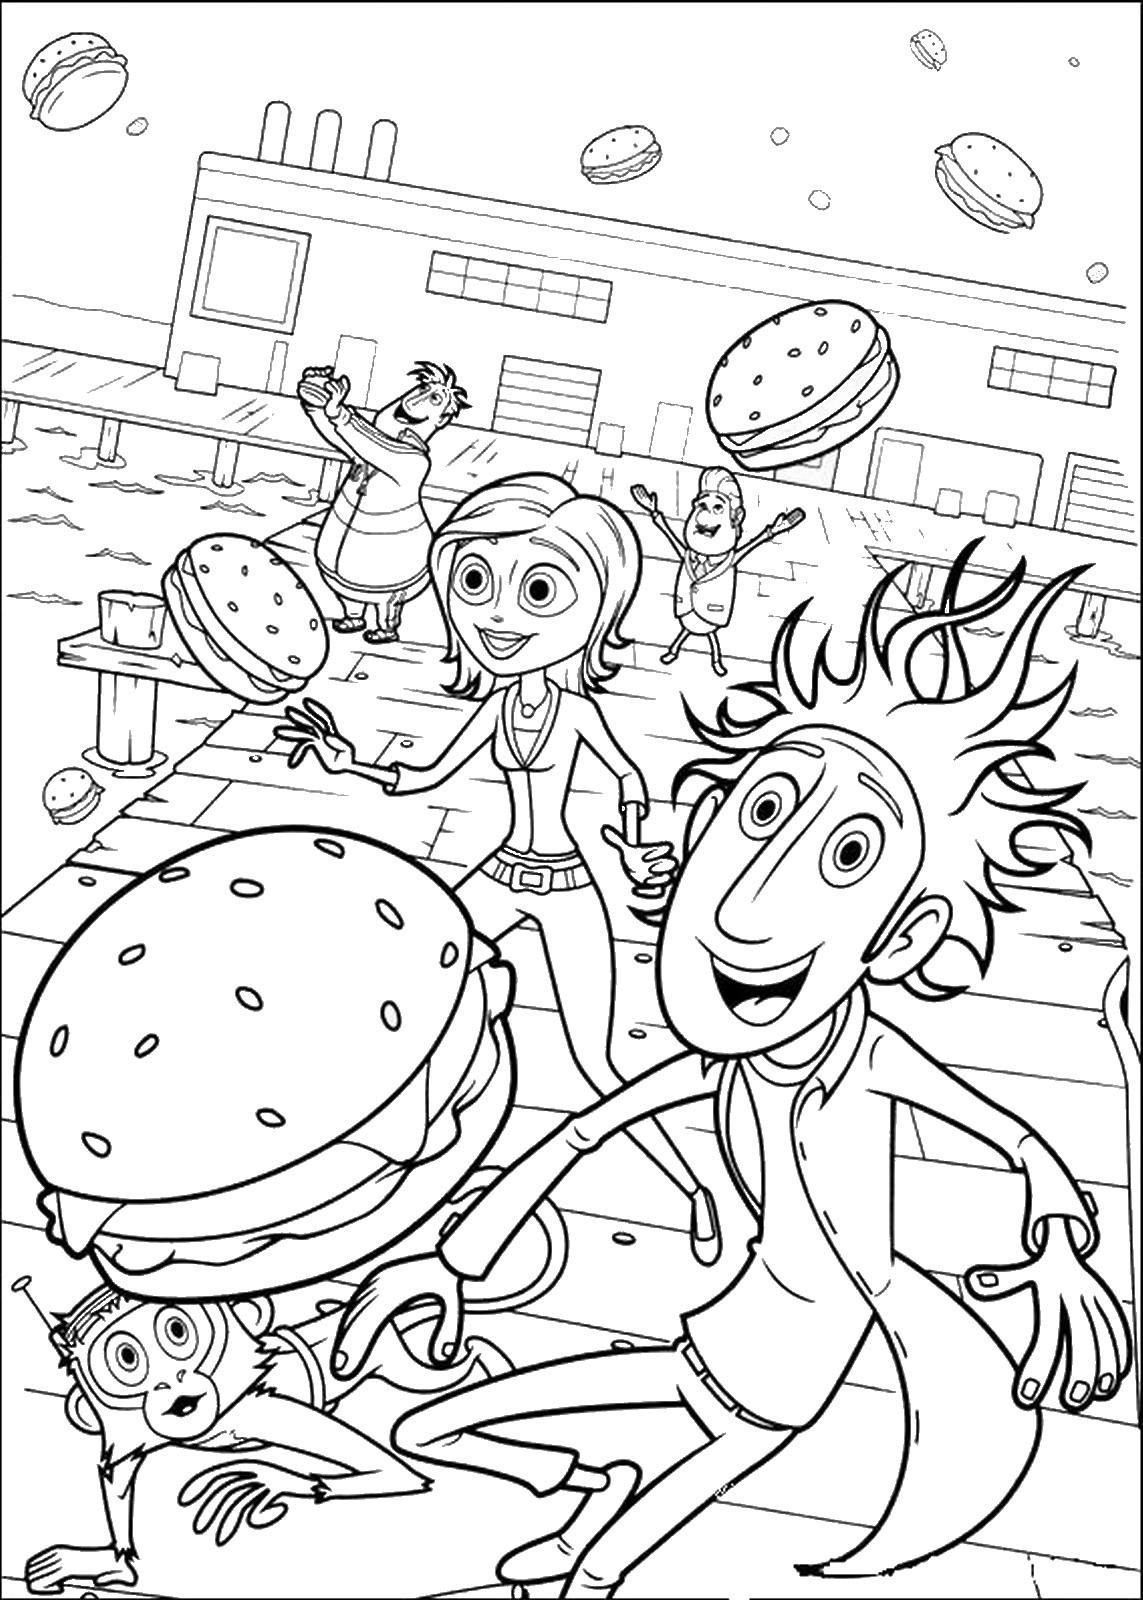 cloudy with a chance of meatballs 2 coloring pages cloudy with a chance of meatballs coloring pages for kids coloring meatballs chance 2 with of a pages cloudy